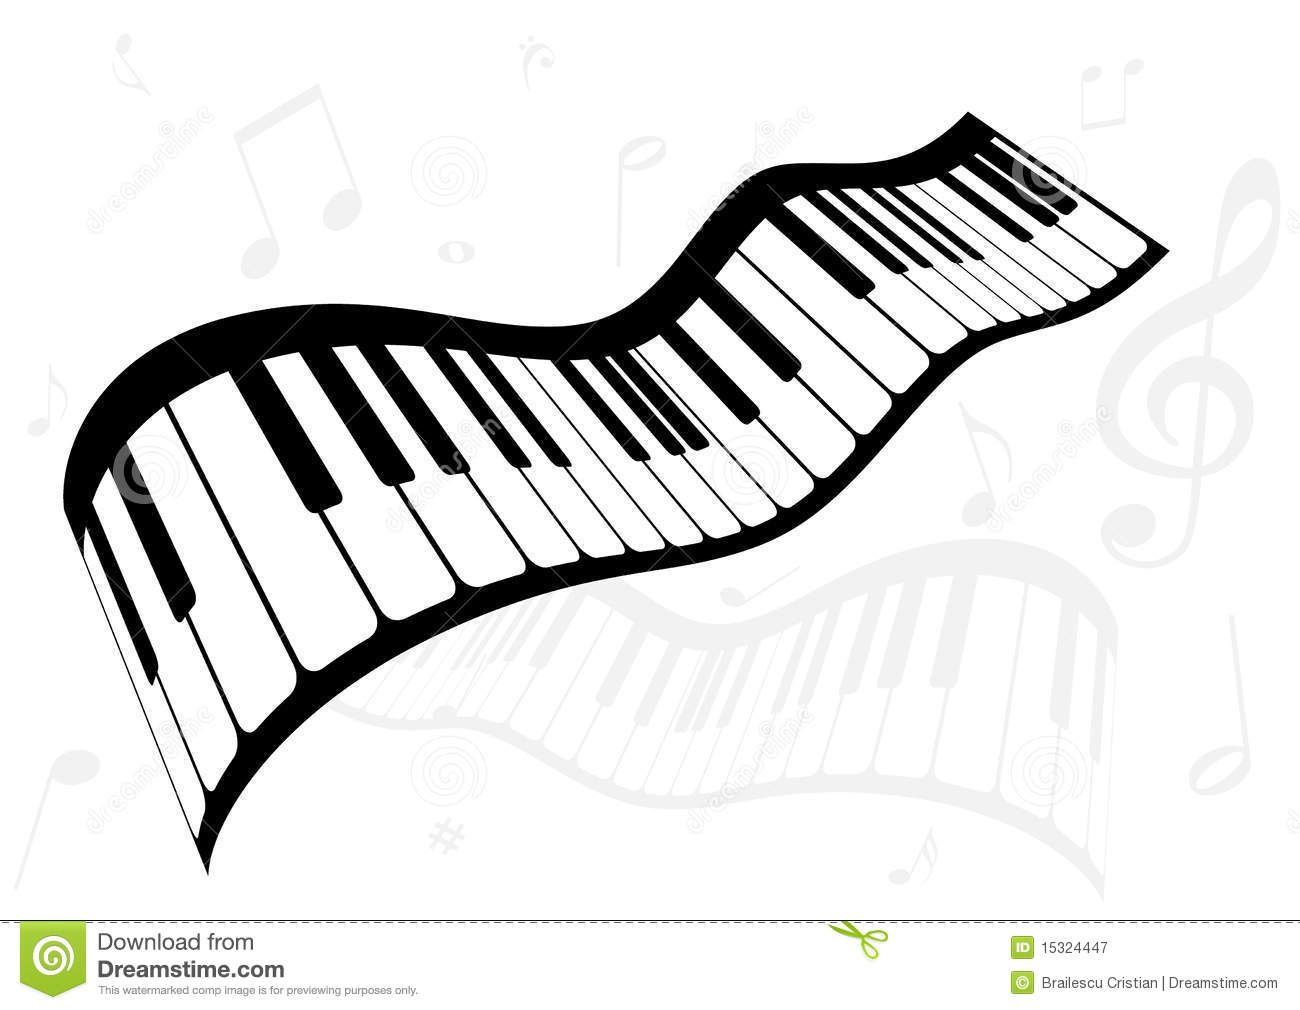 Illustration Of A Piano And Music Notes Royalty Free Stock